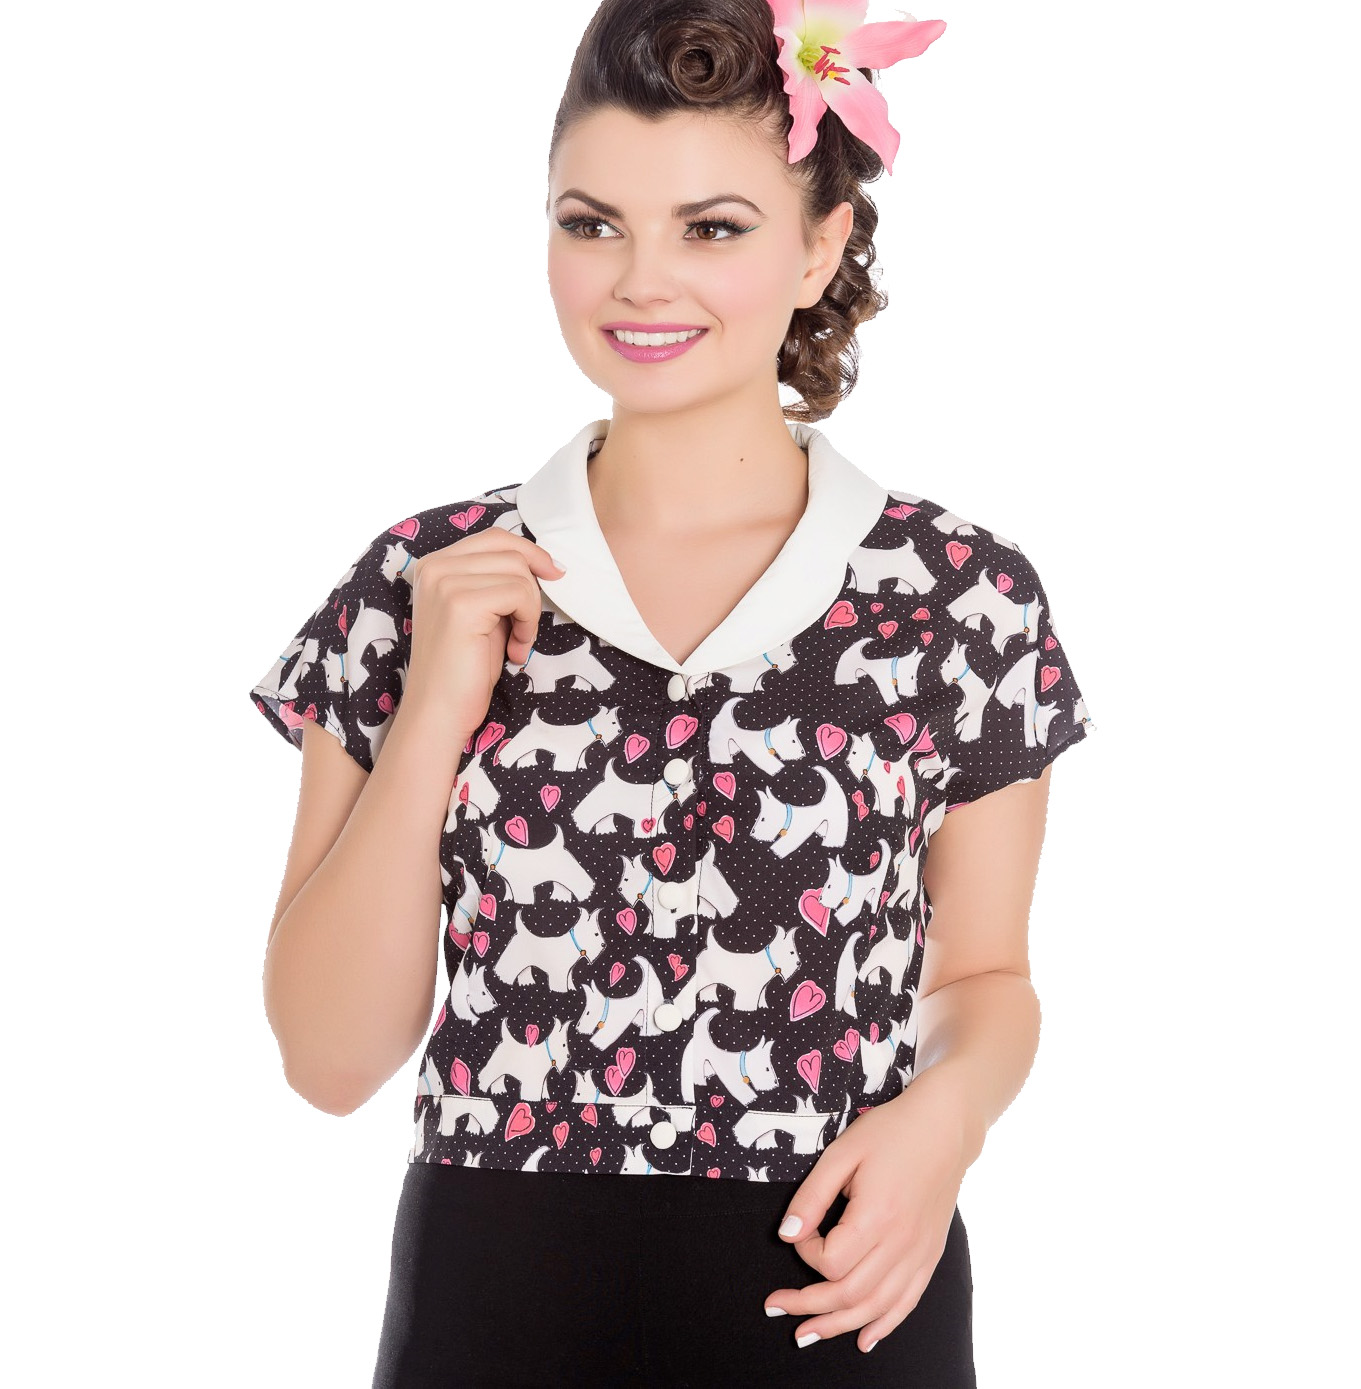 Hell-Bunny-50s-Retro-Top-Scottie-Dog-Heart-AGGY-Cropped-Blouse-Shirt-All-Sizes thumbnail 23